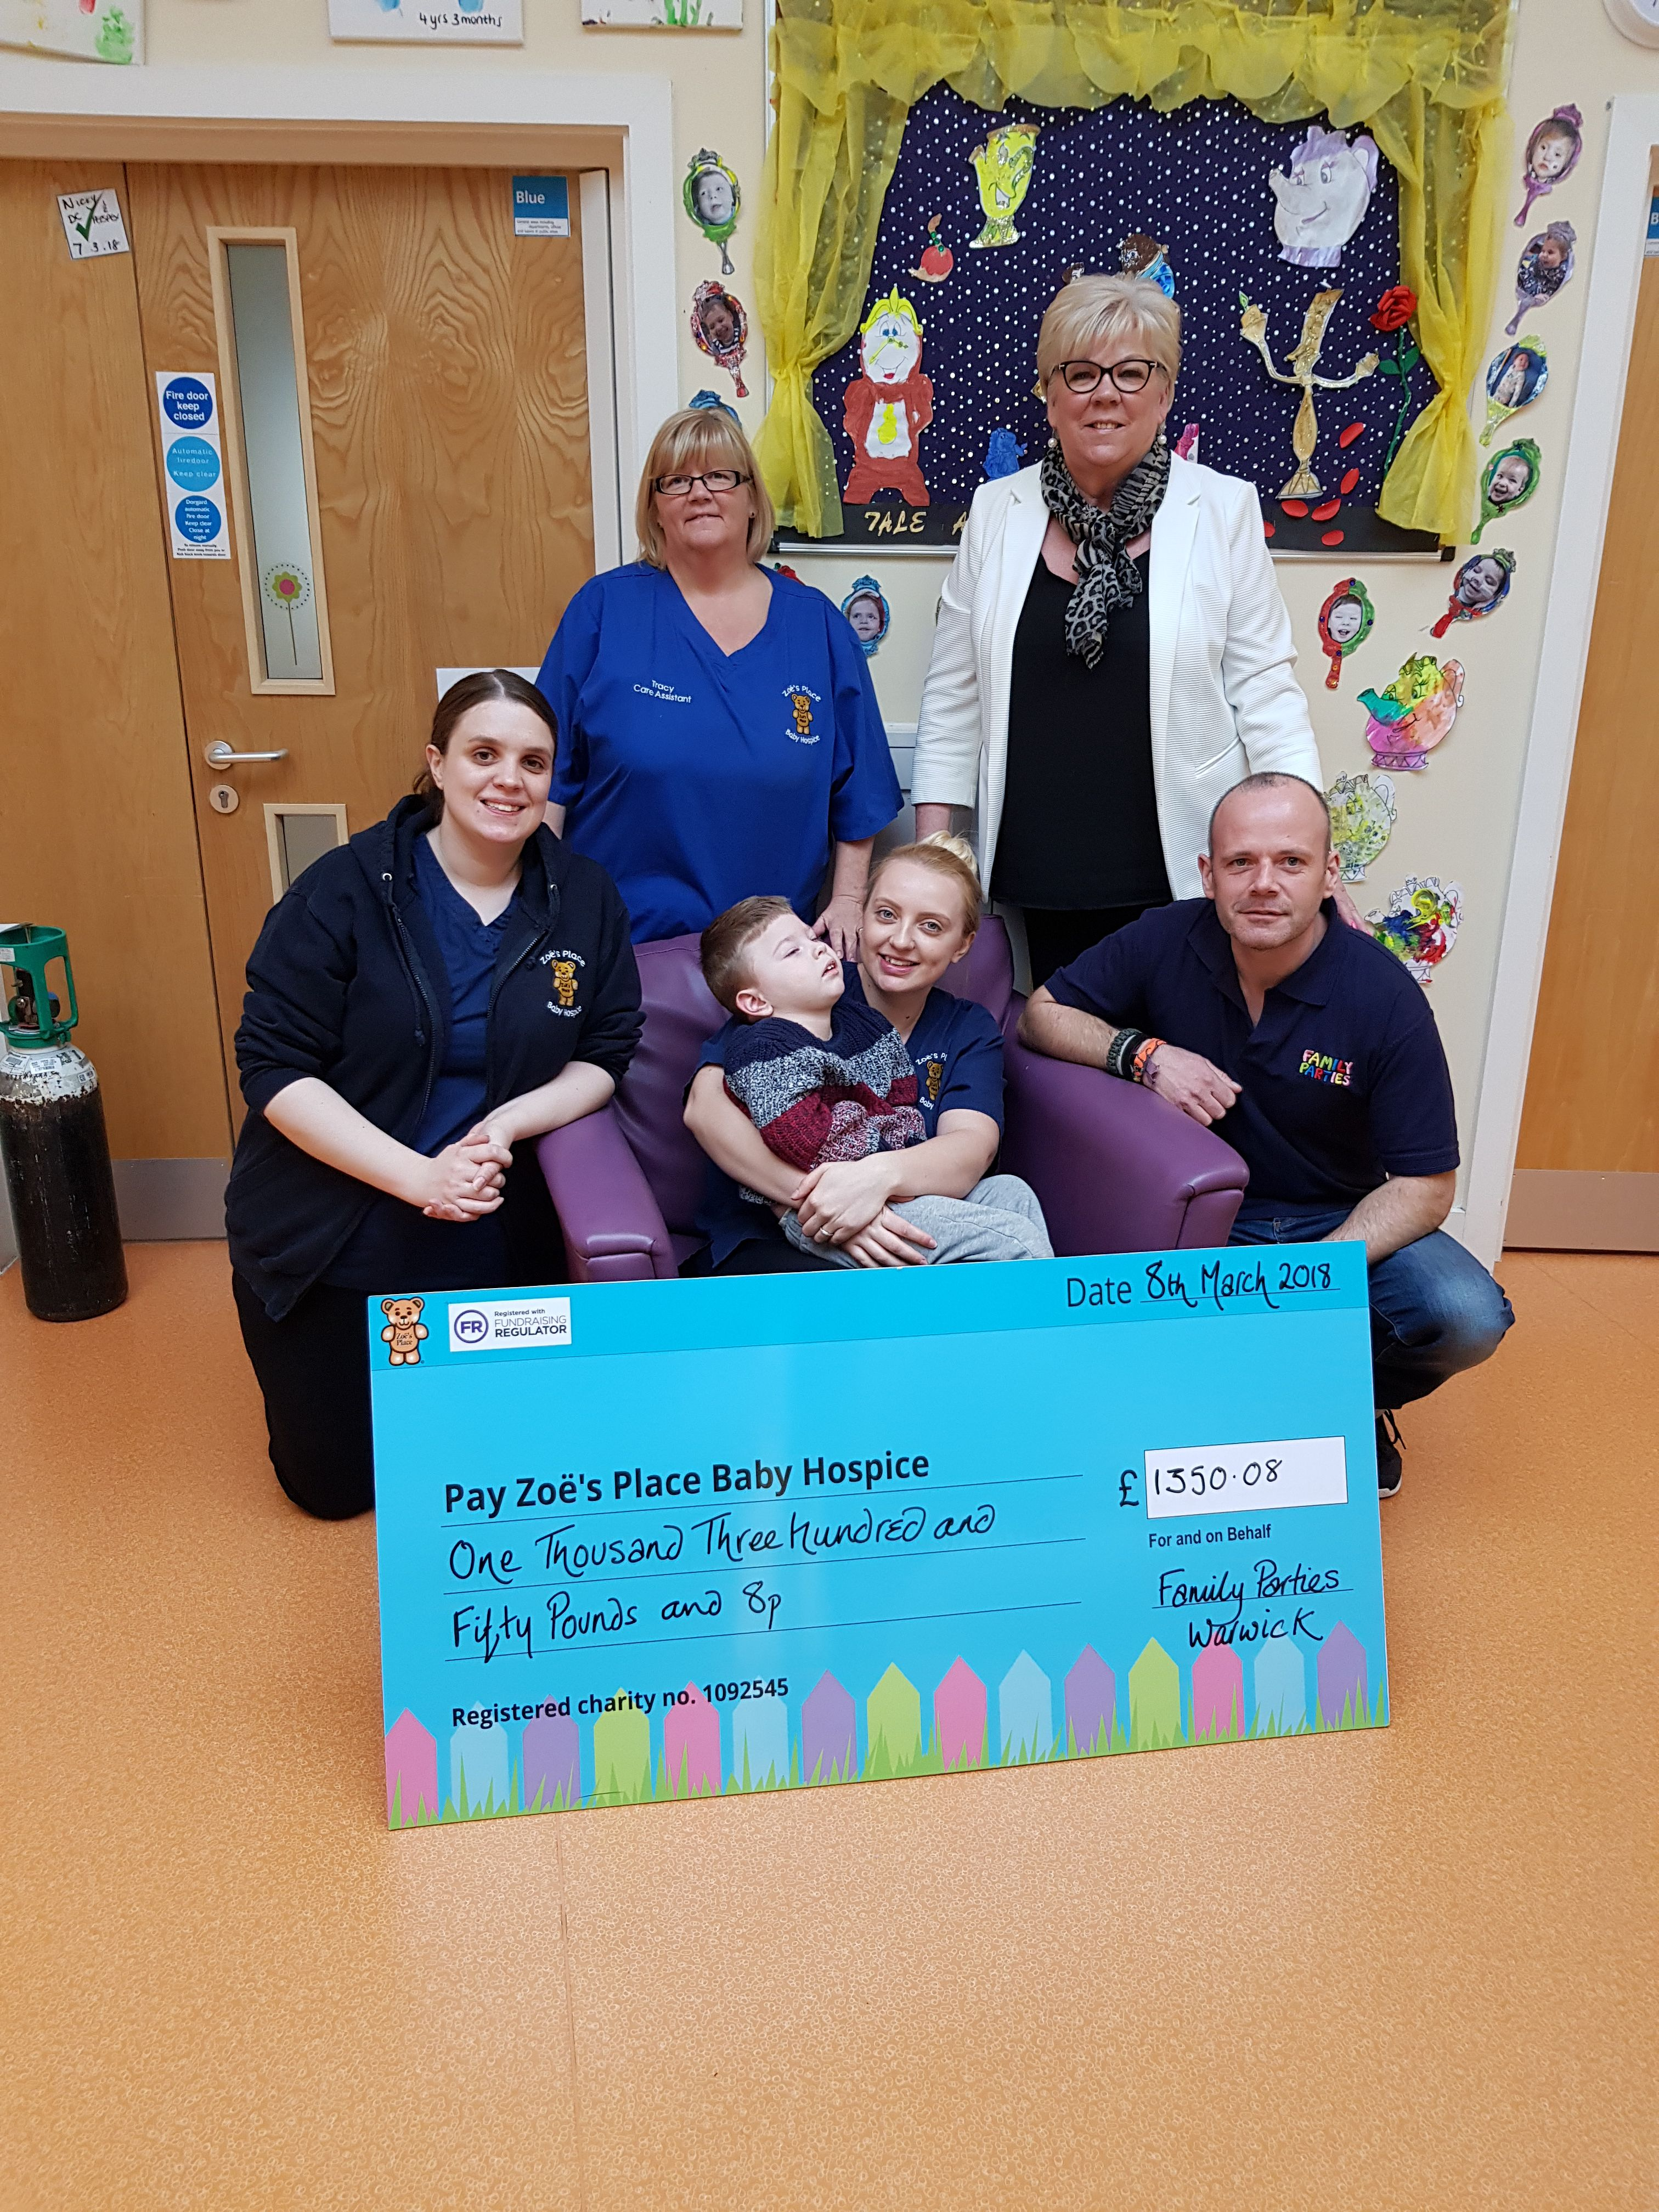 Family Parties cheque presentation to Zoe's Place Baby Hospice in Coventry